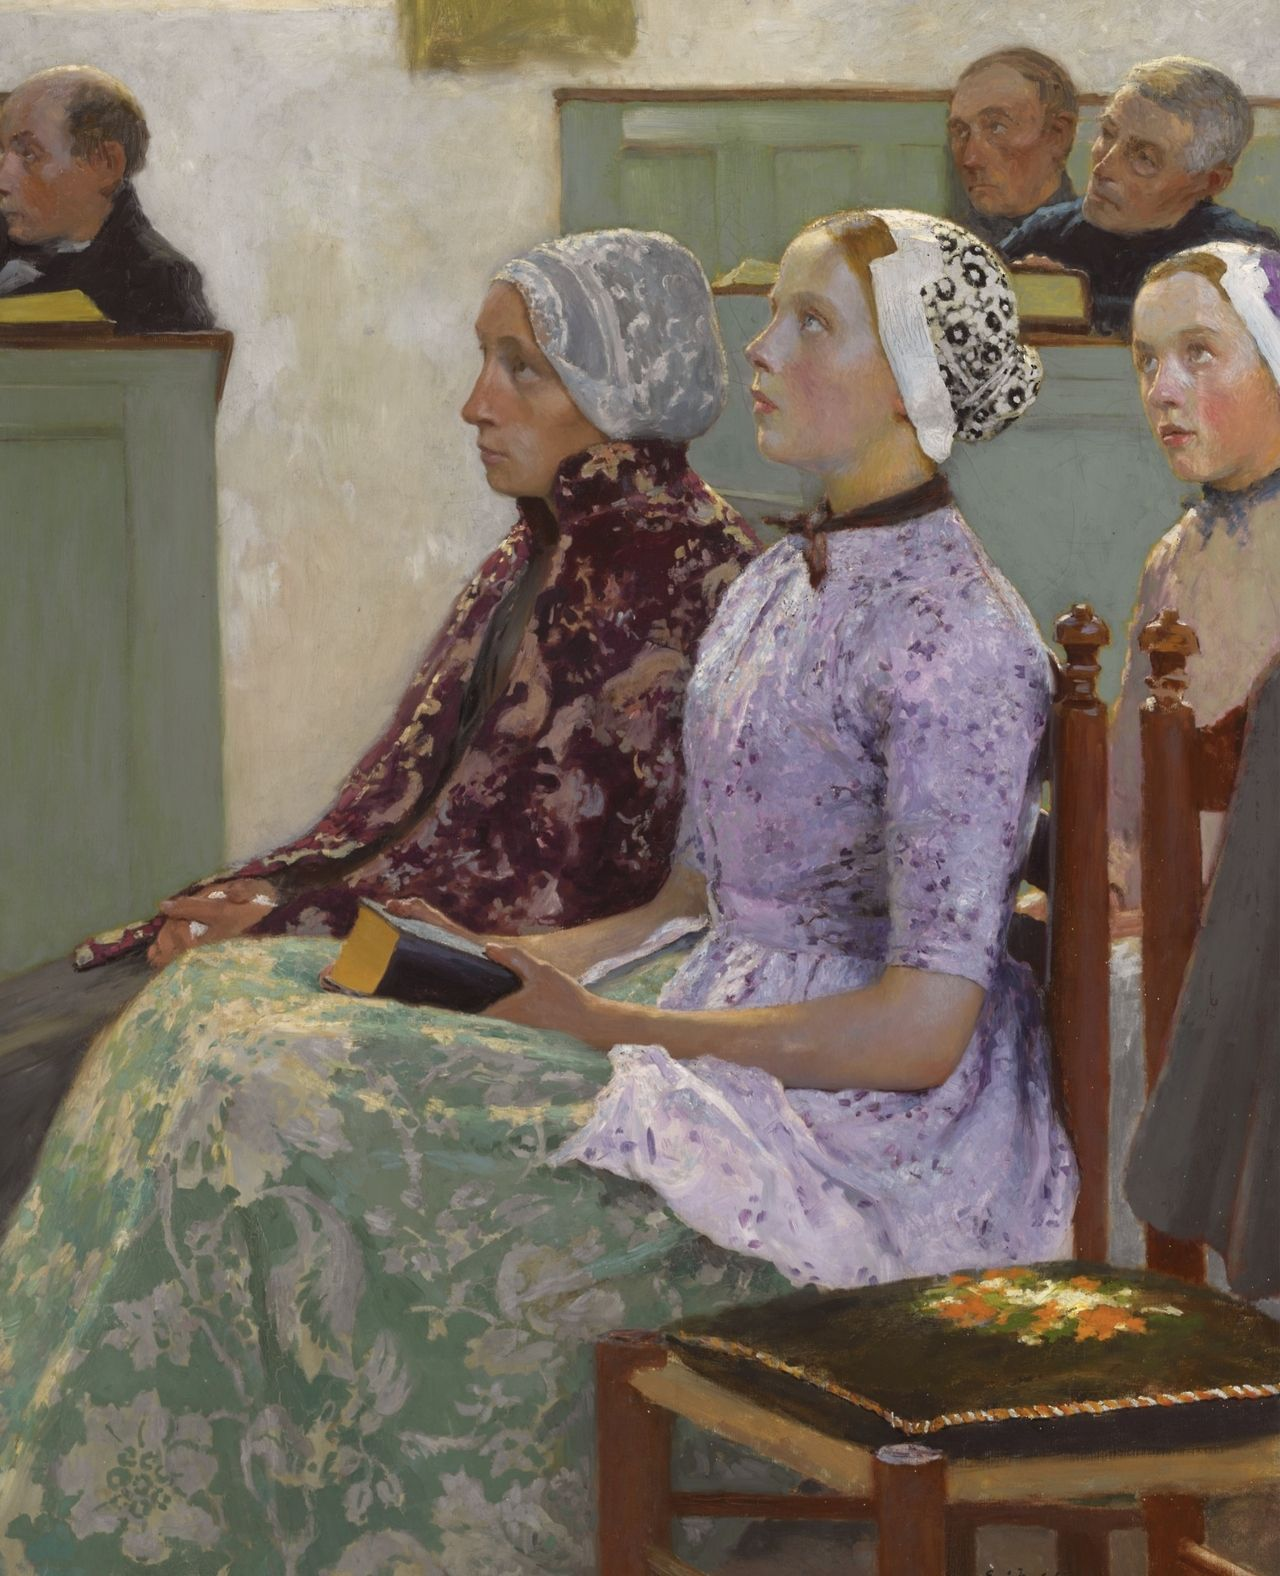 Sunday Mass (c.1886). Gari Melchers (American, 1860-1932). Oil on canvas.